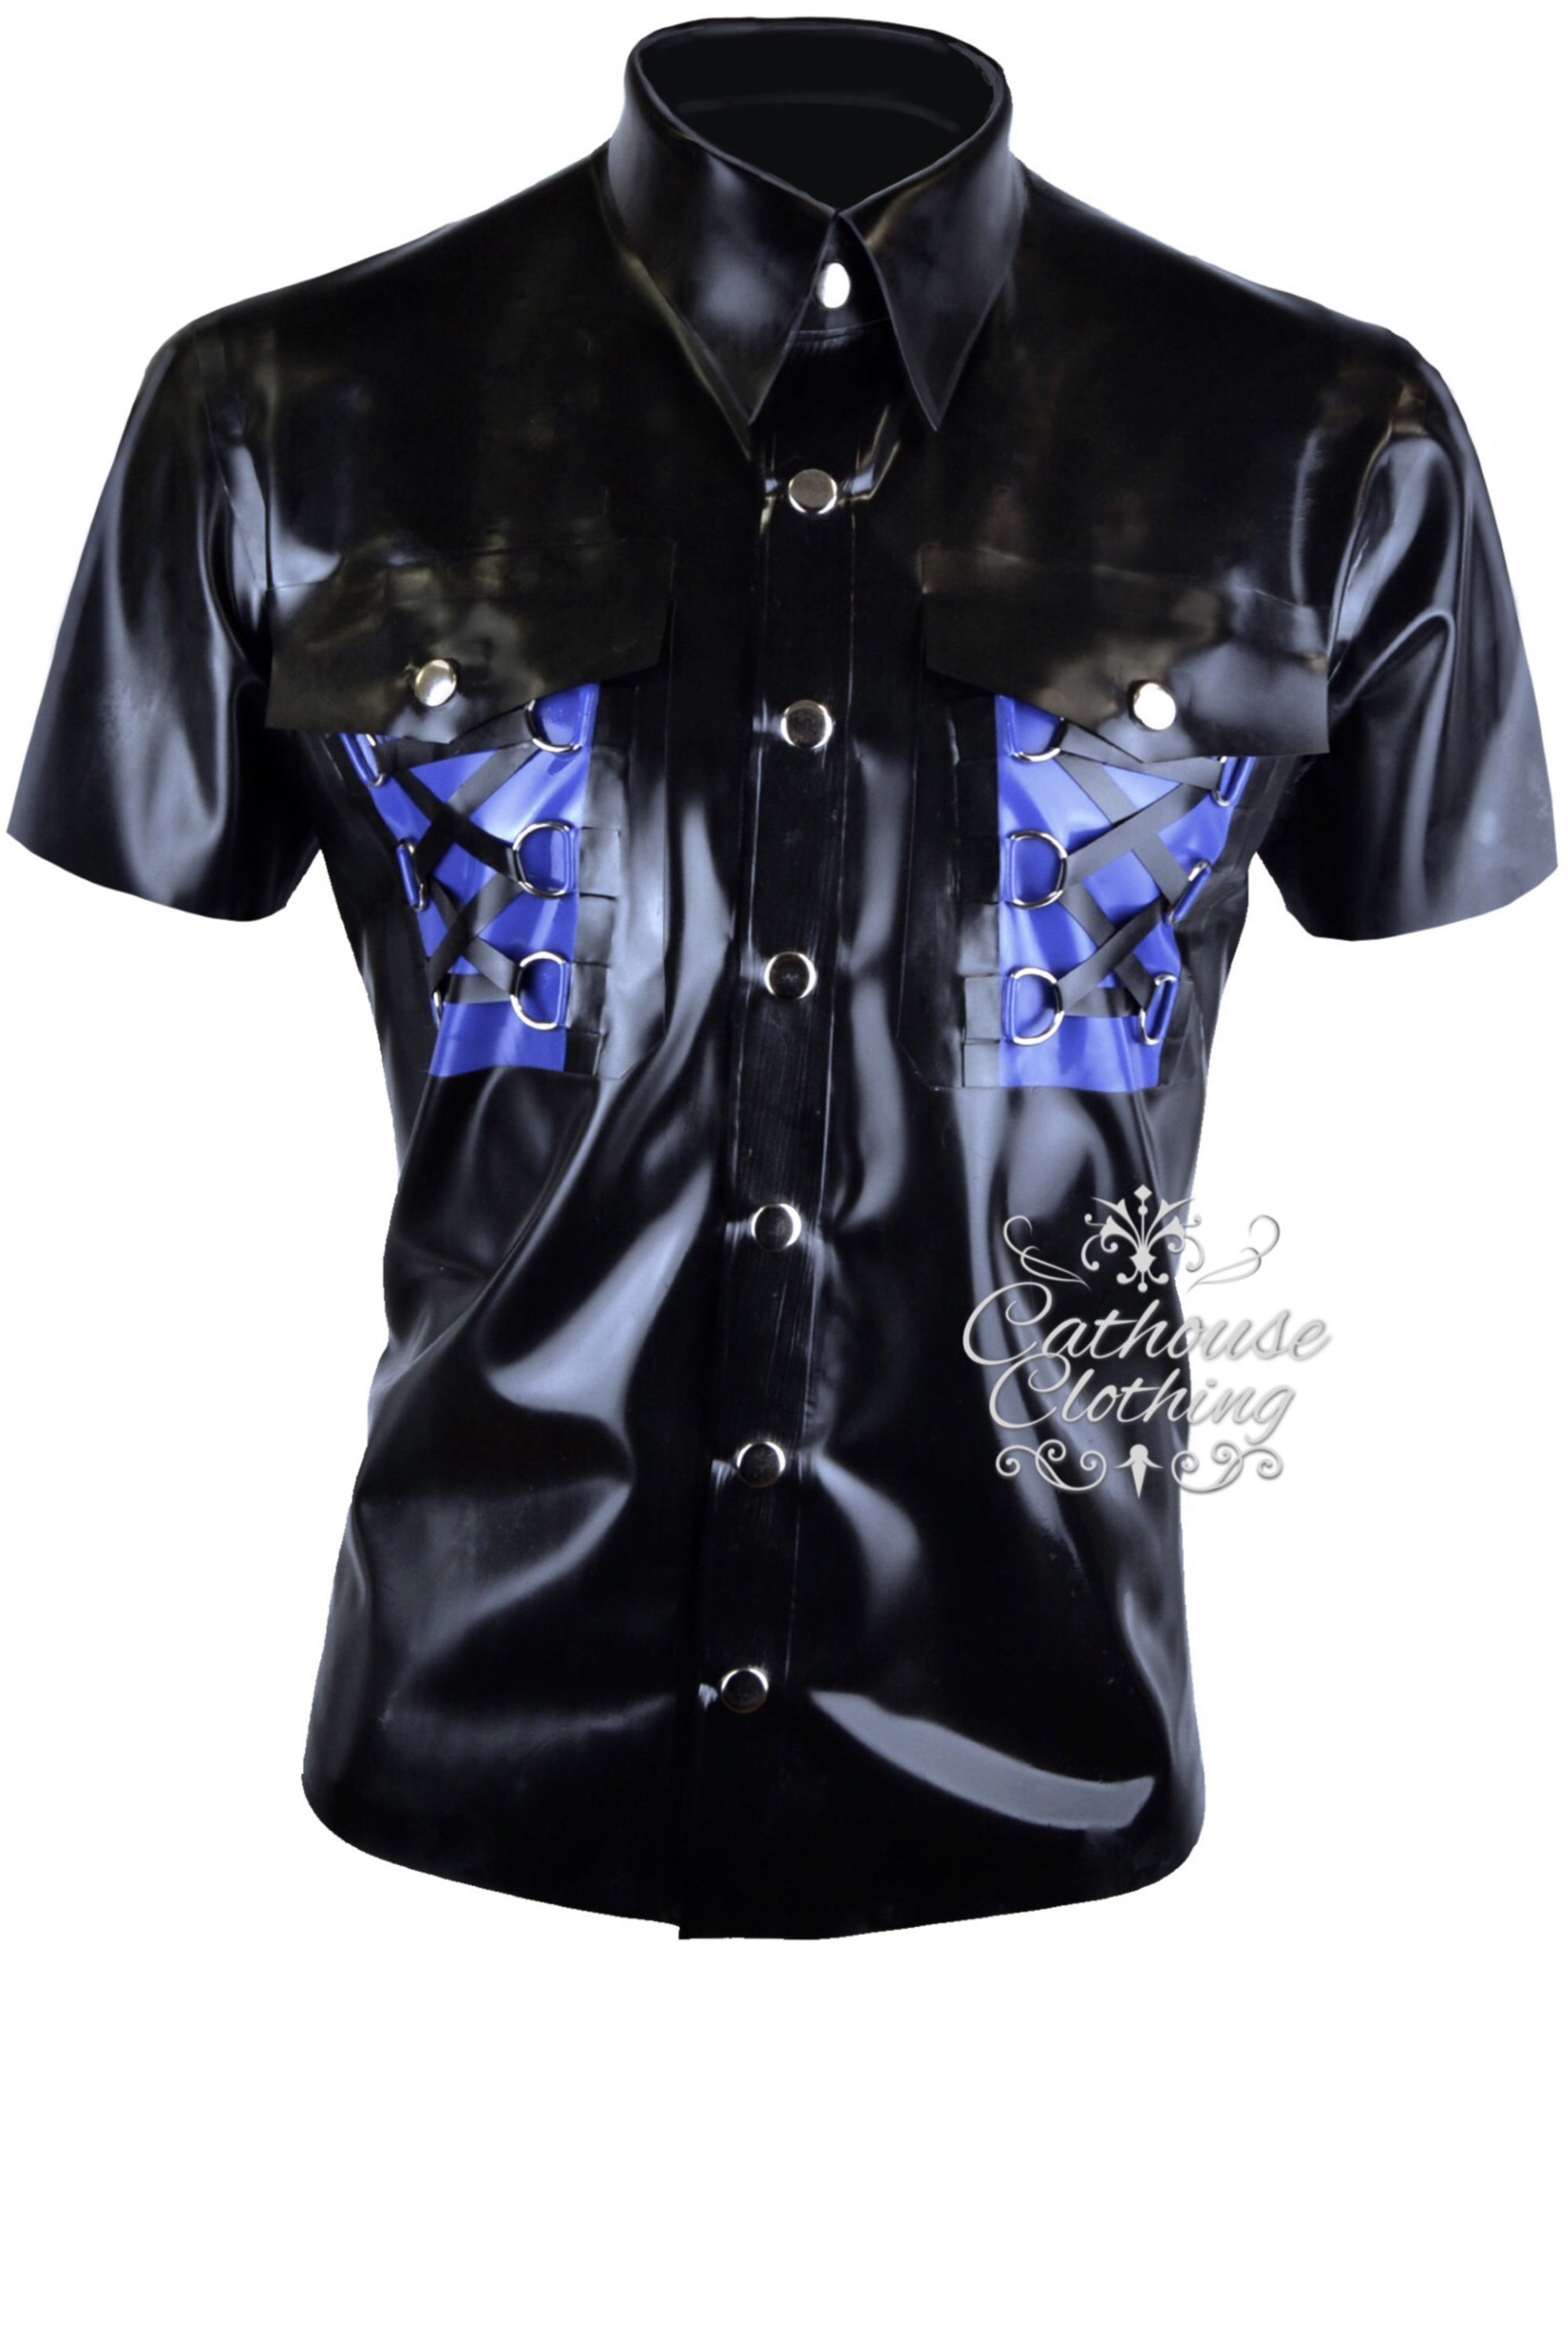 Men's latex Midnight shirt